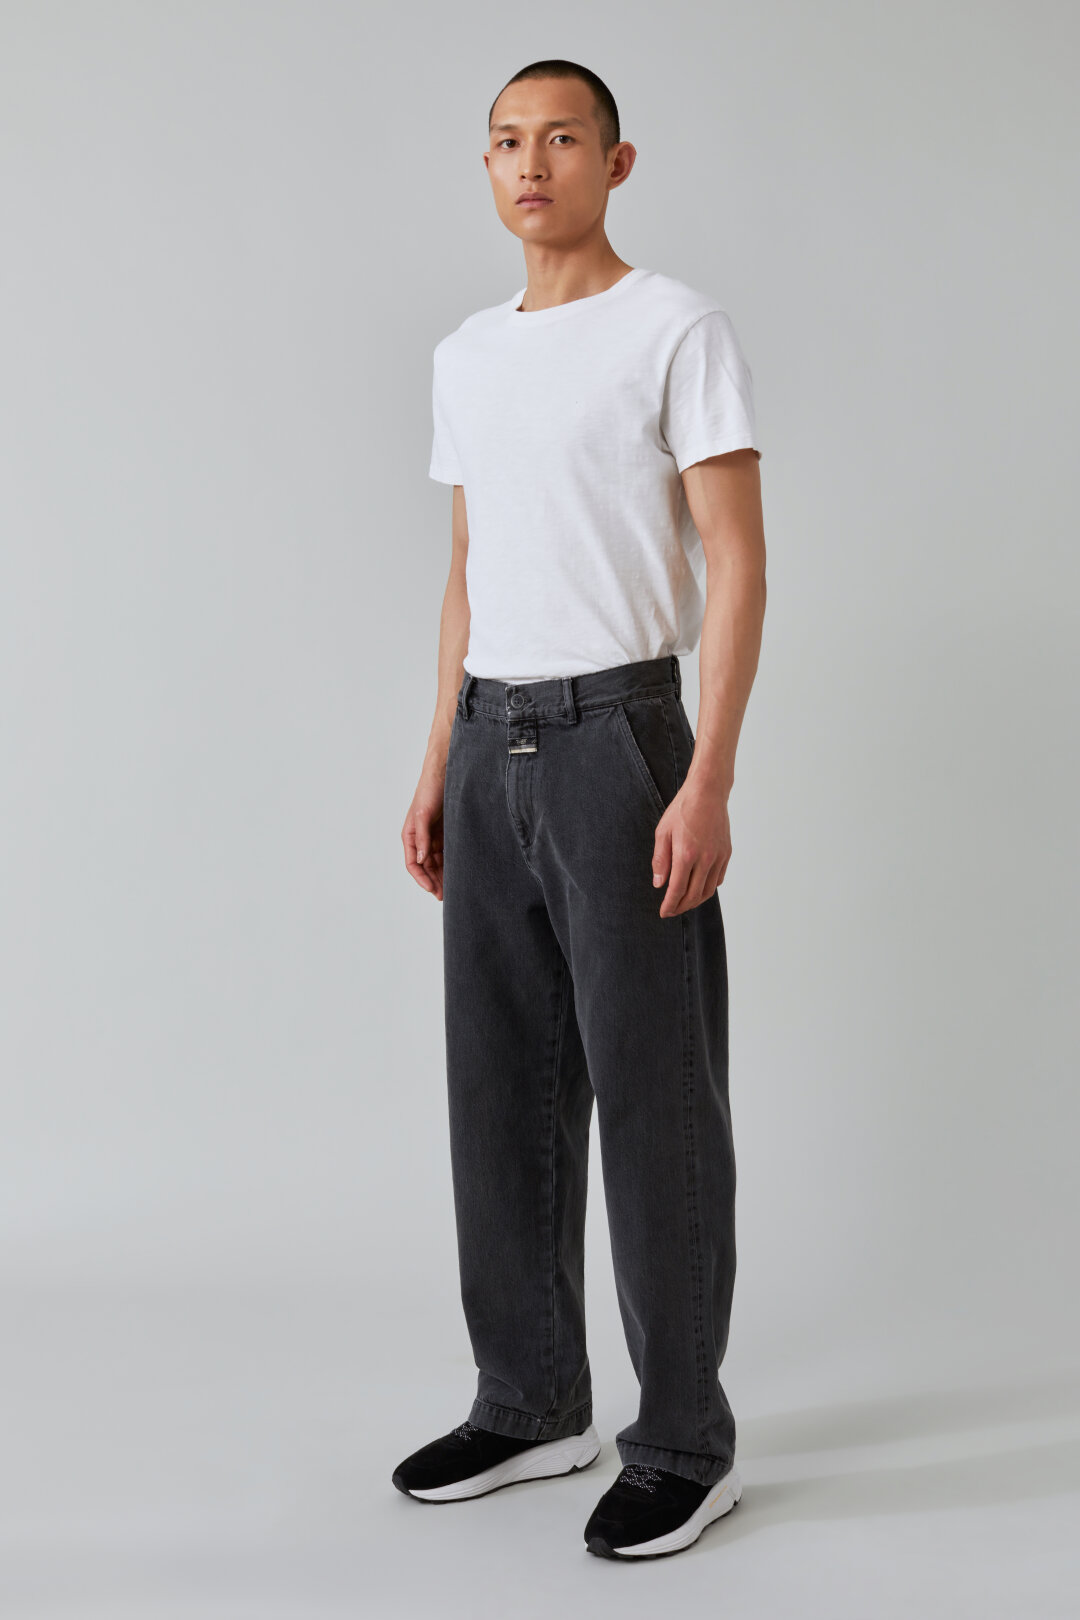 Widey Wide Relaxed Fit Black Selvedge Denim